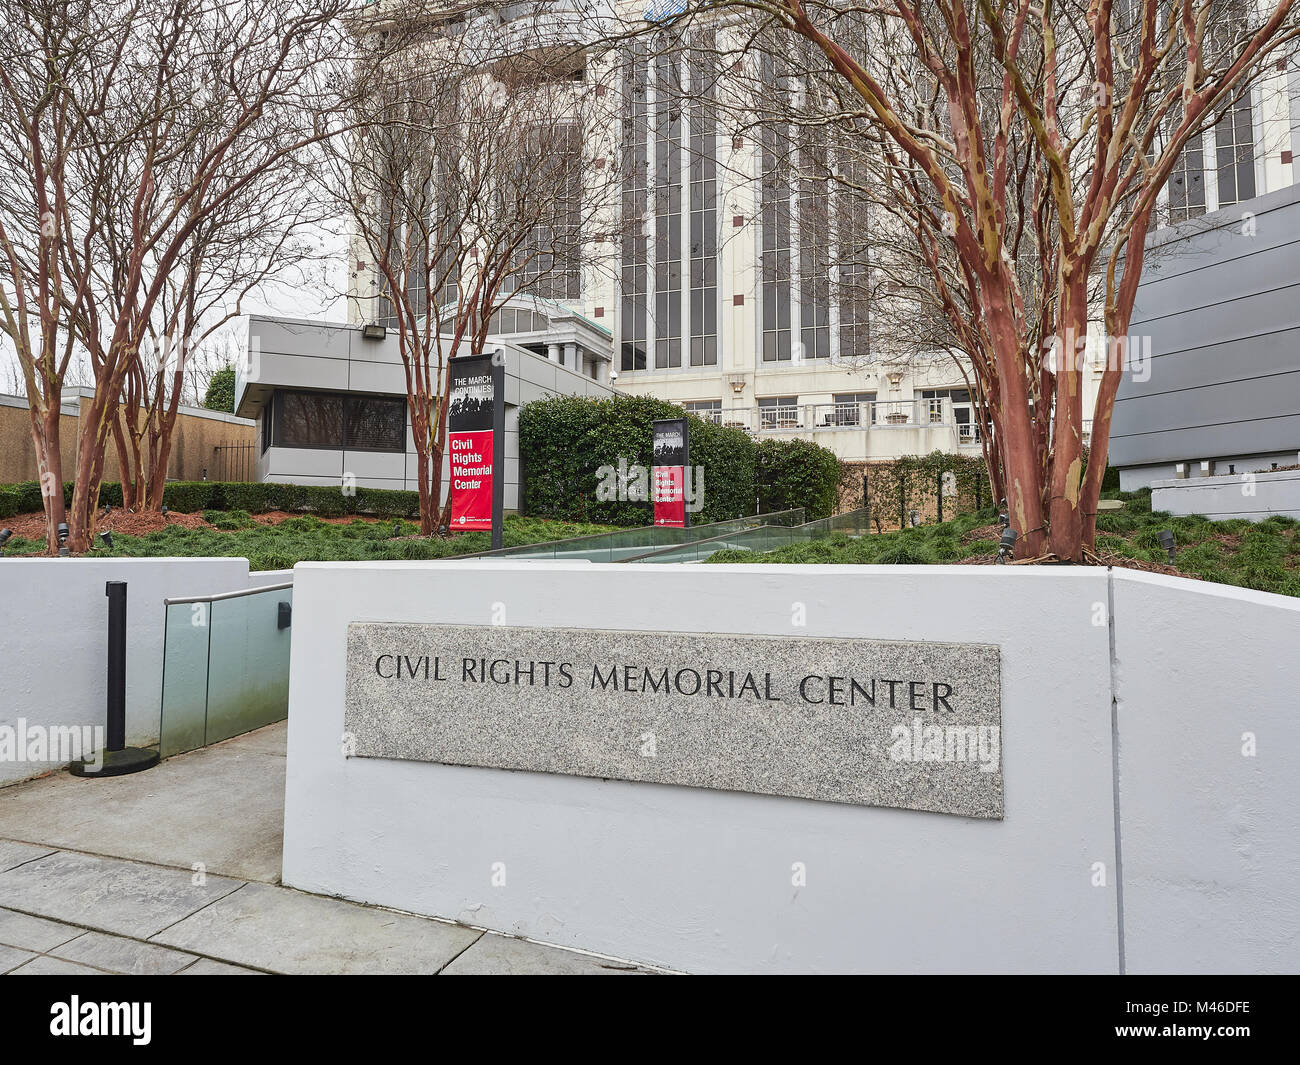 Exterior entrance to the Civil Rights Memorial Center in Montgomery Alabama USA. - Stock Image